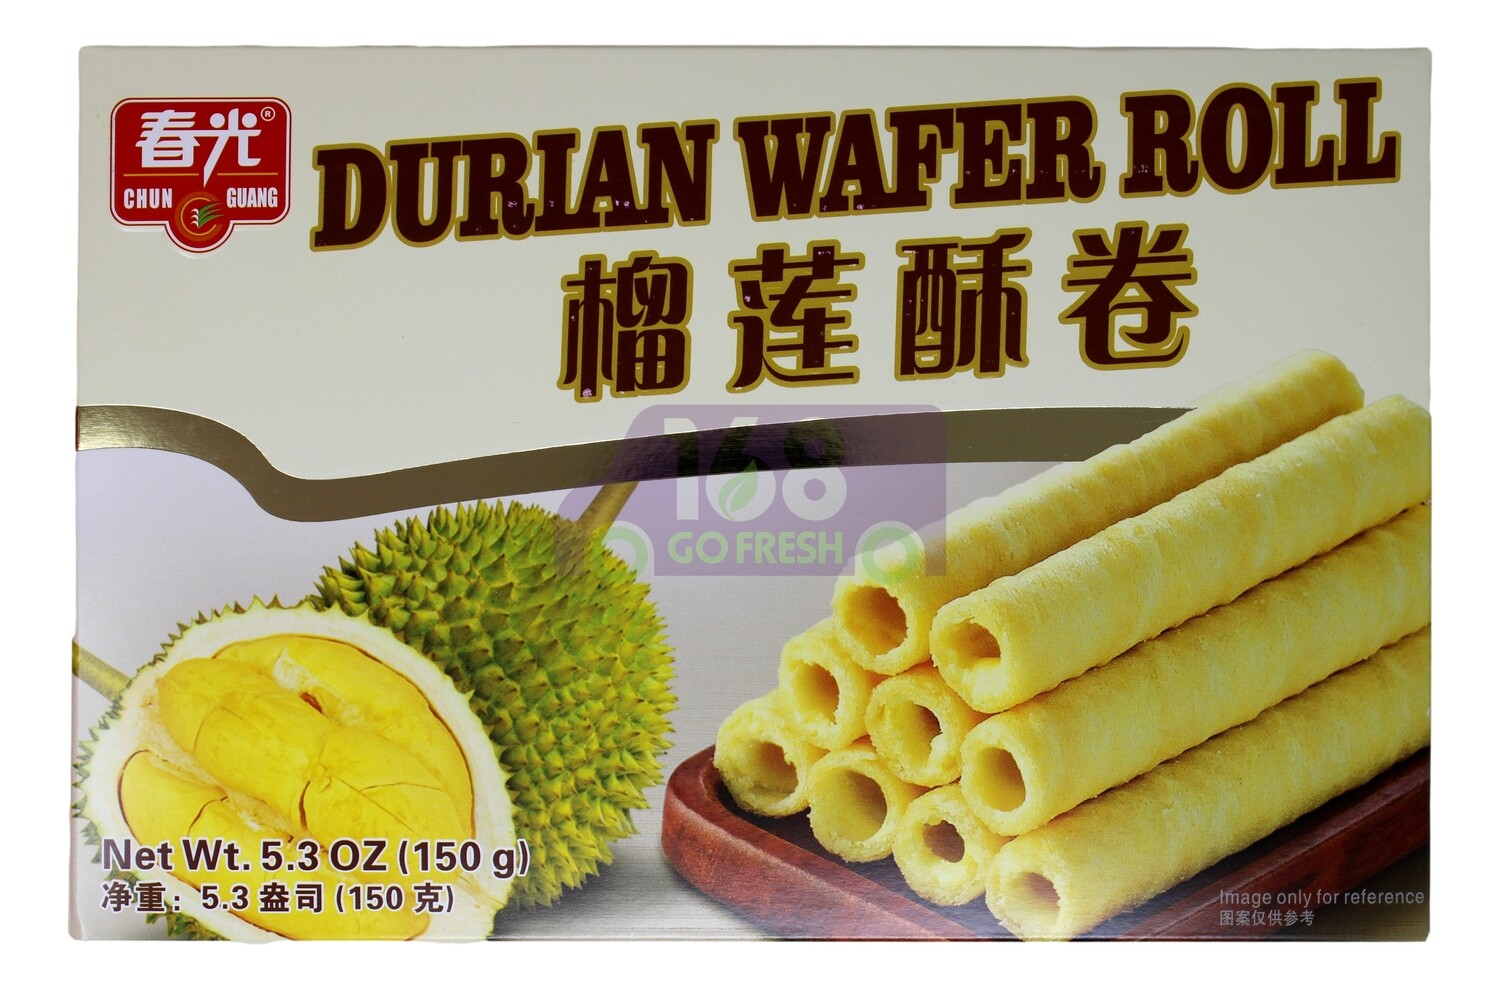 DURIAN WAFER ROLL 春光 榴莲酥卷(5.3OZ)